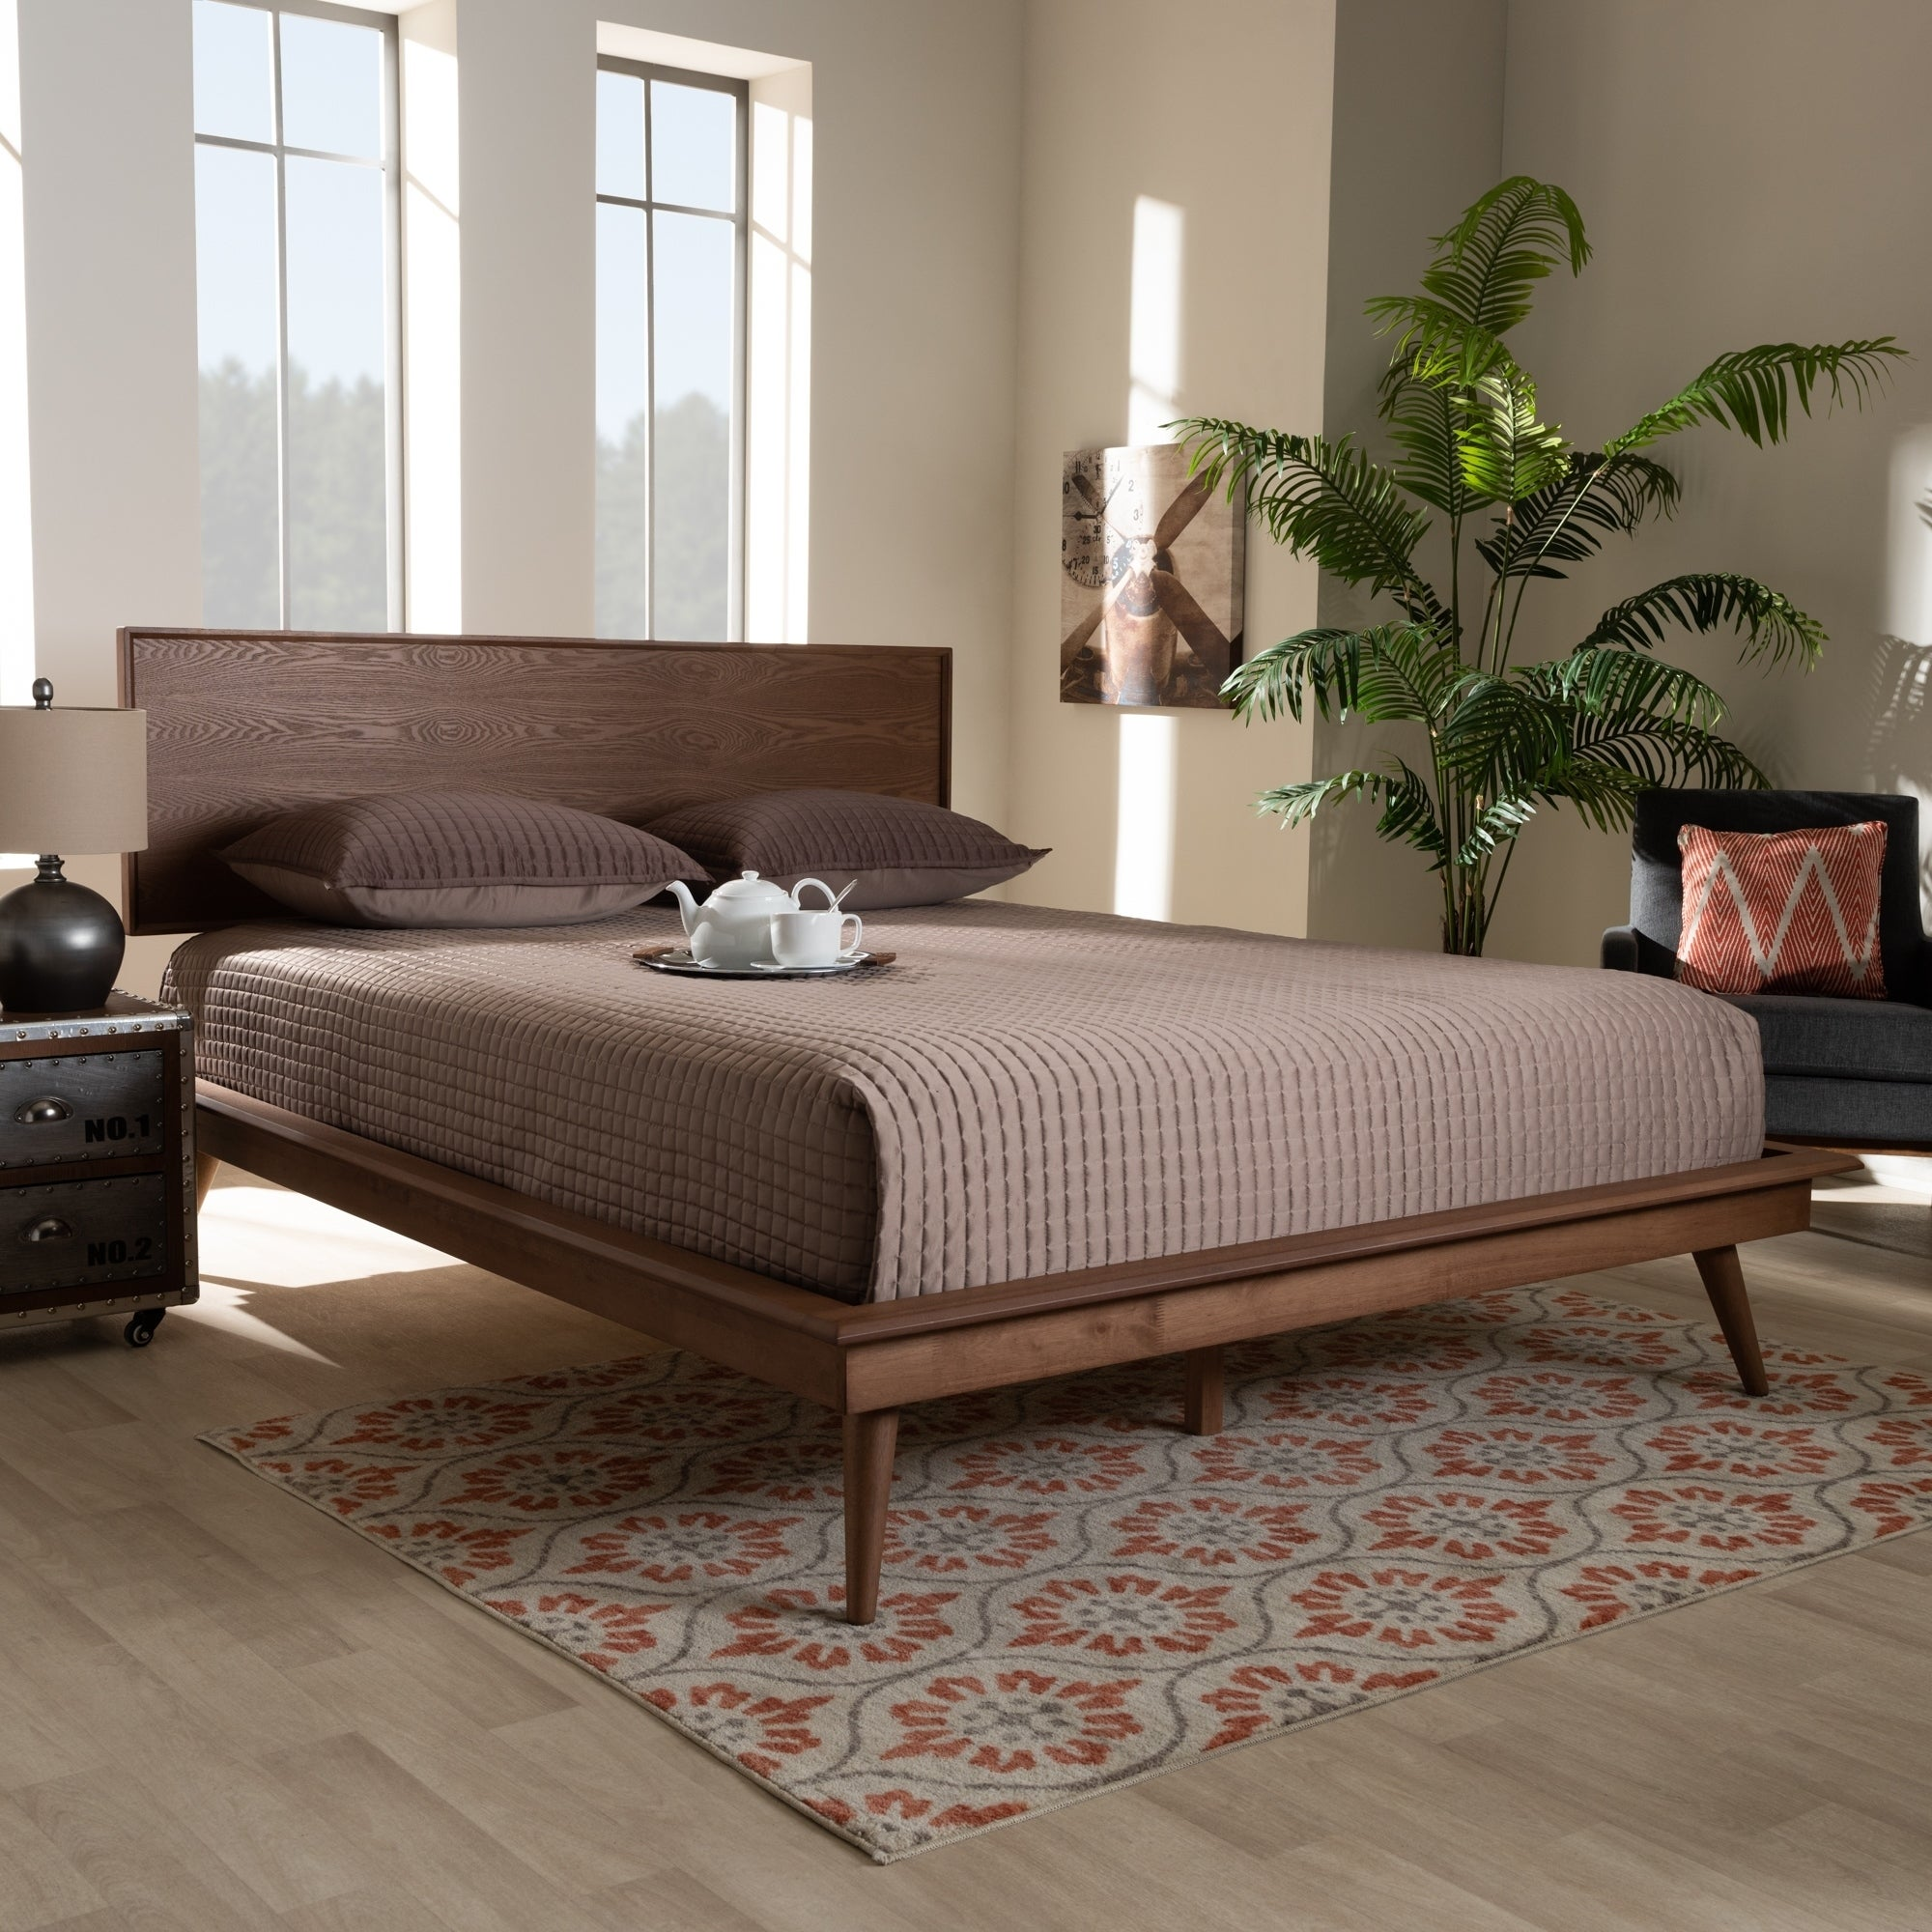 Carson Carrington Ulvsta Mid-century Modern Walnut Wood Platform Bed